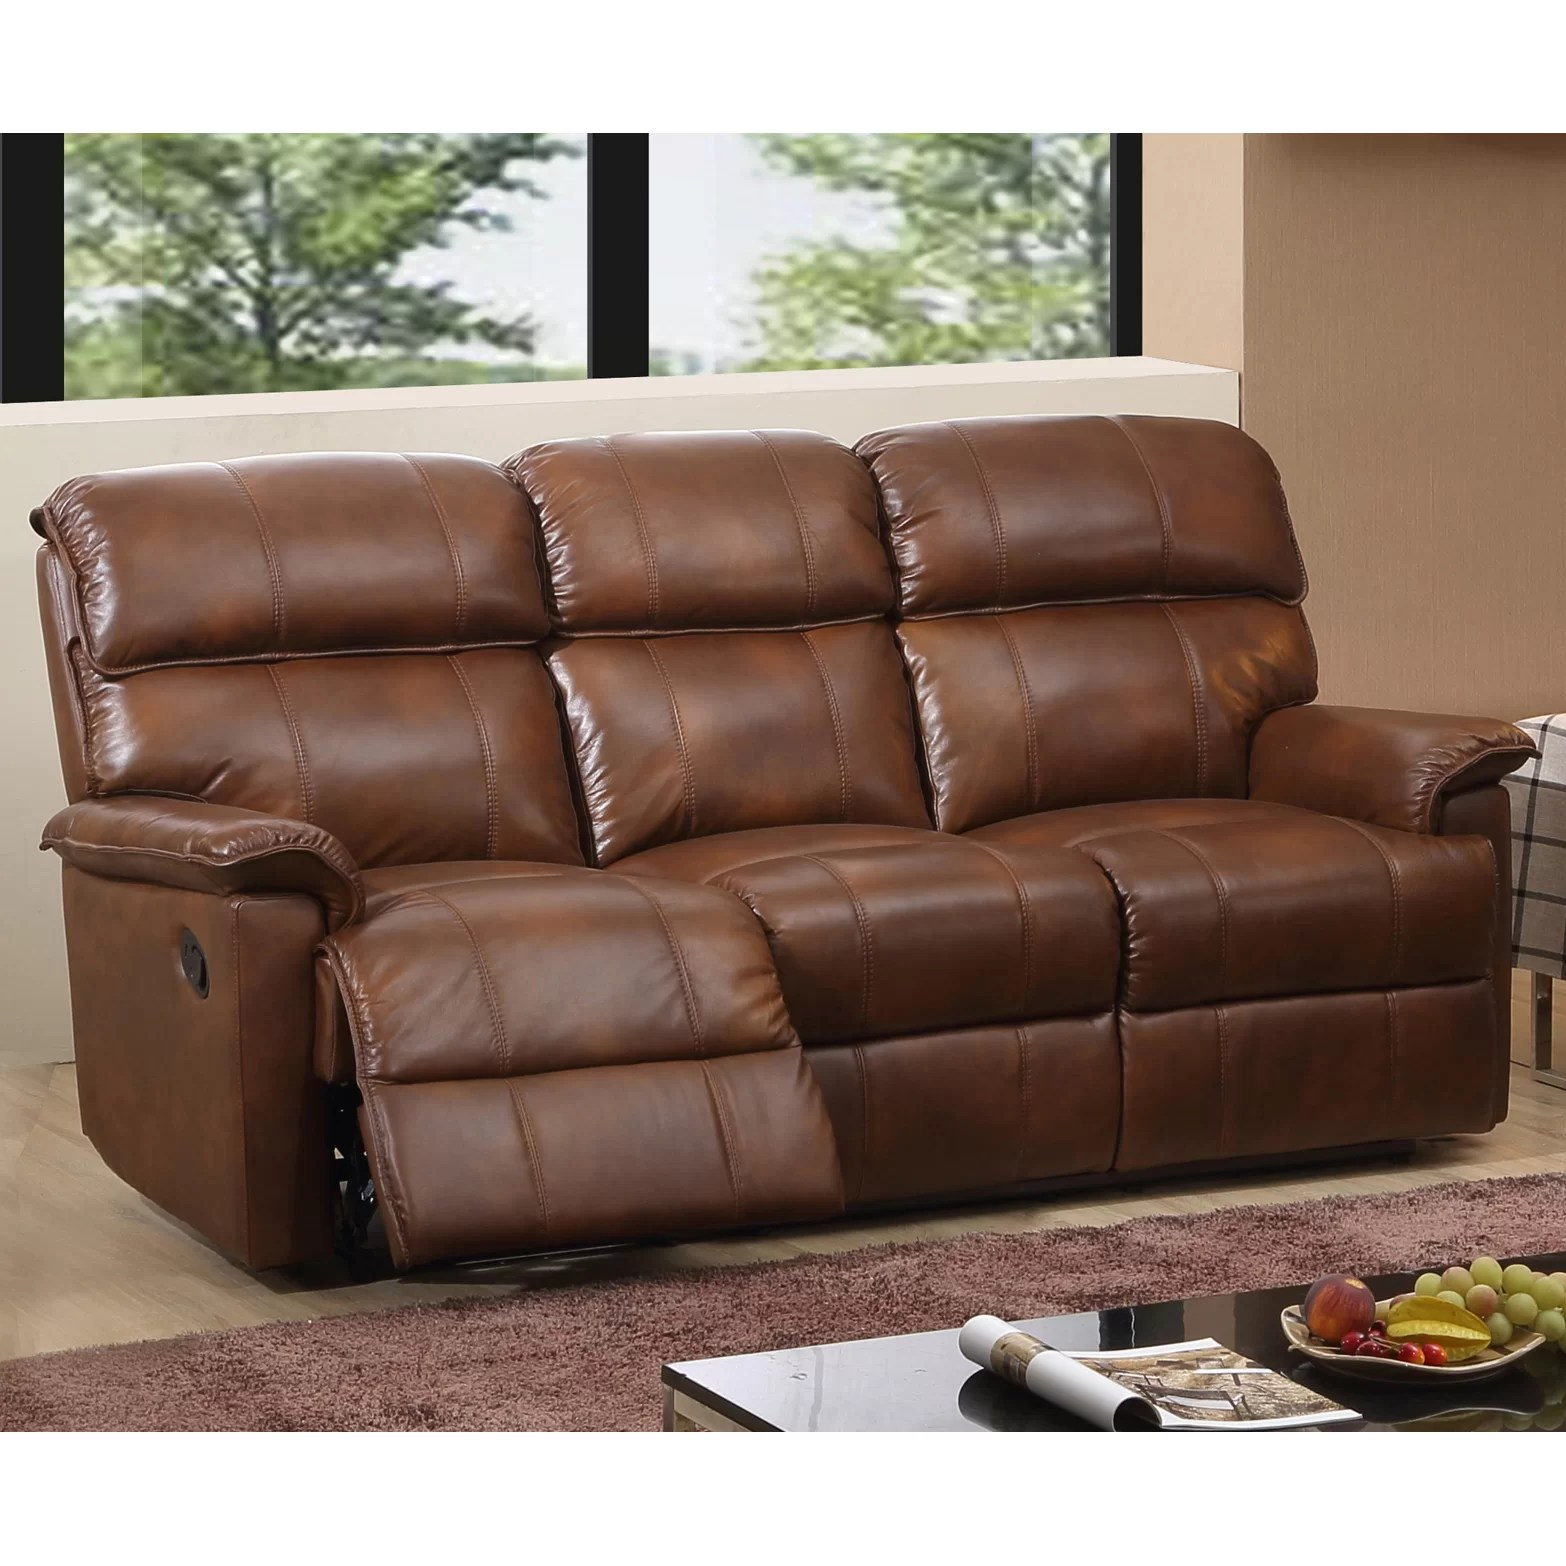 sofa set below 3000 in hyderabad wood frame diy home and haus solenson leather layflat reclining 3 seater